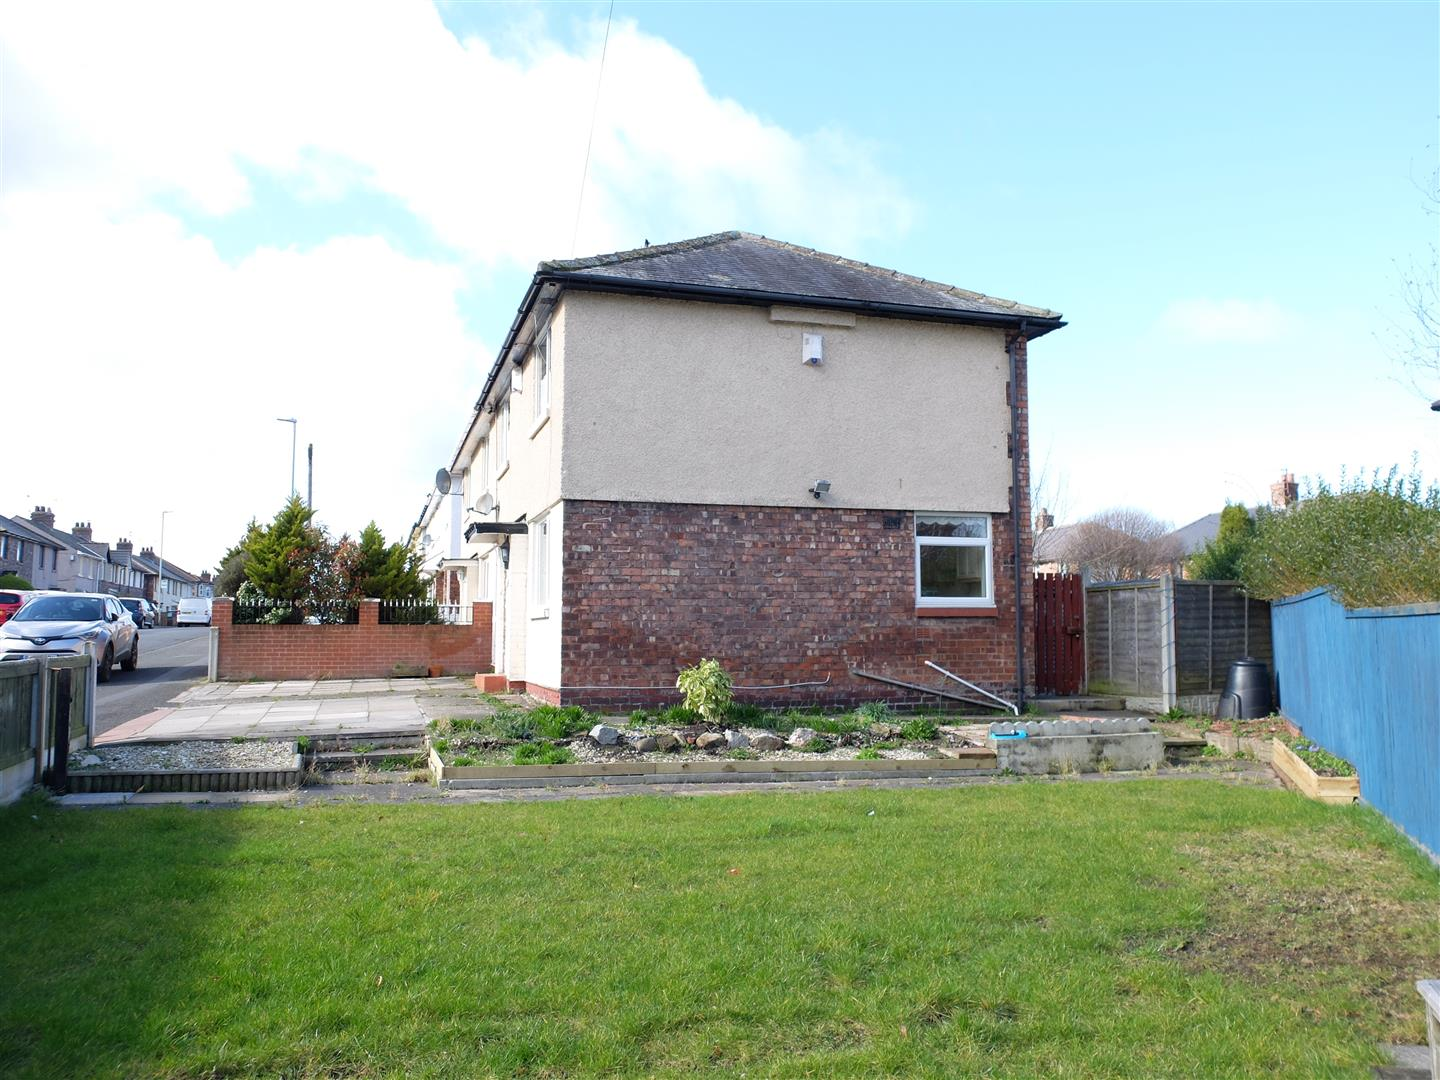 3 Bedrooms House - Semi-Detached On Sale 2 Waldegrave Road Carlisle 95,000